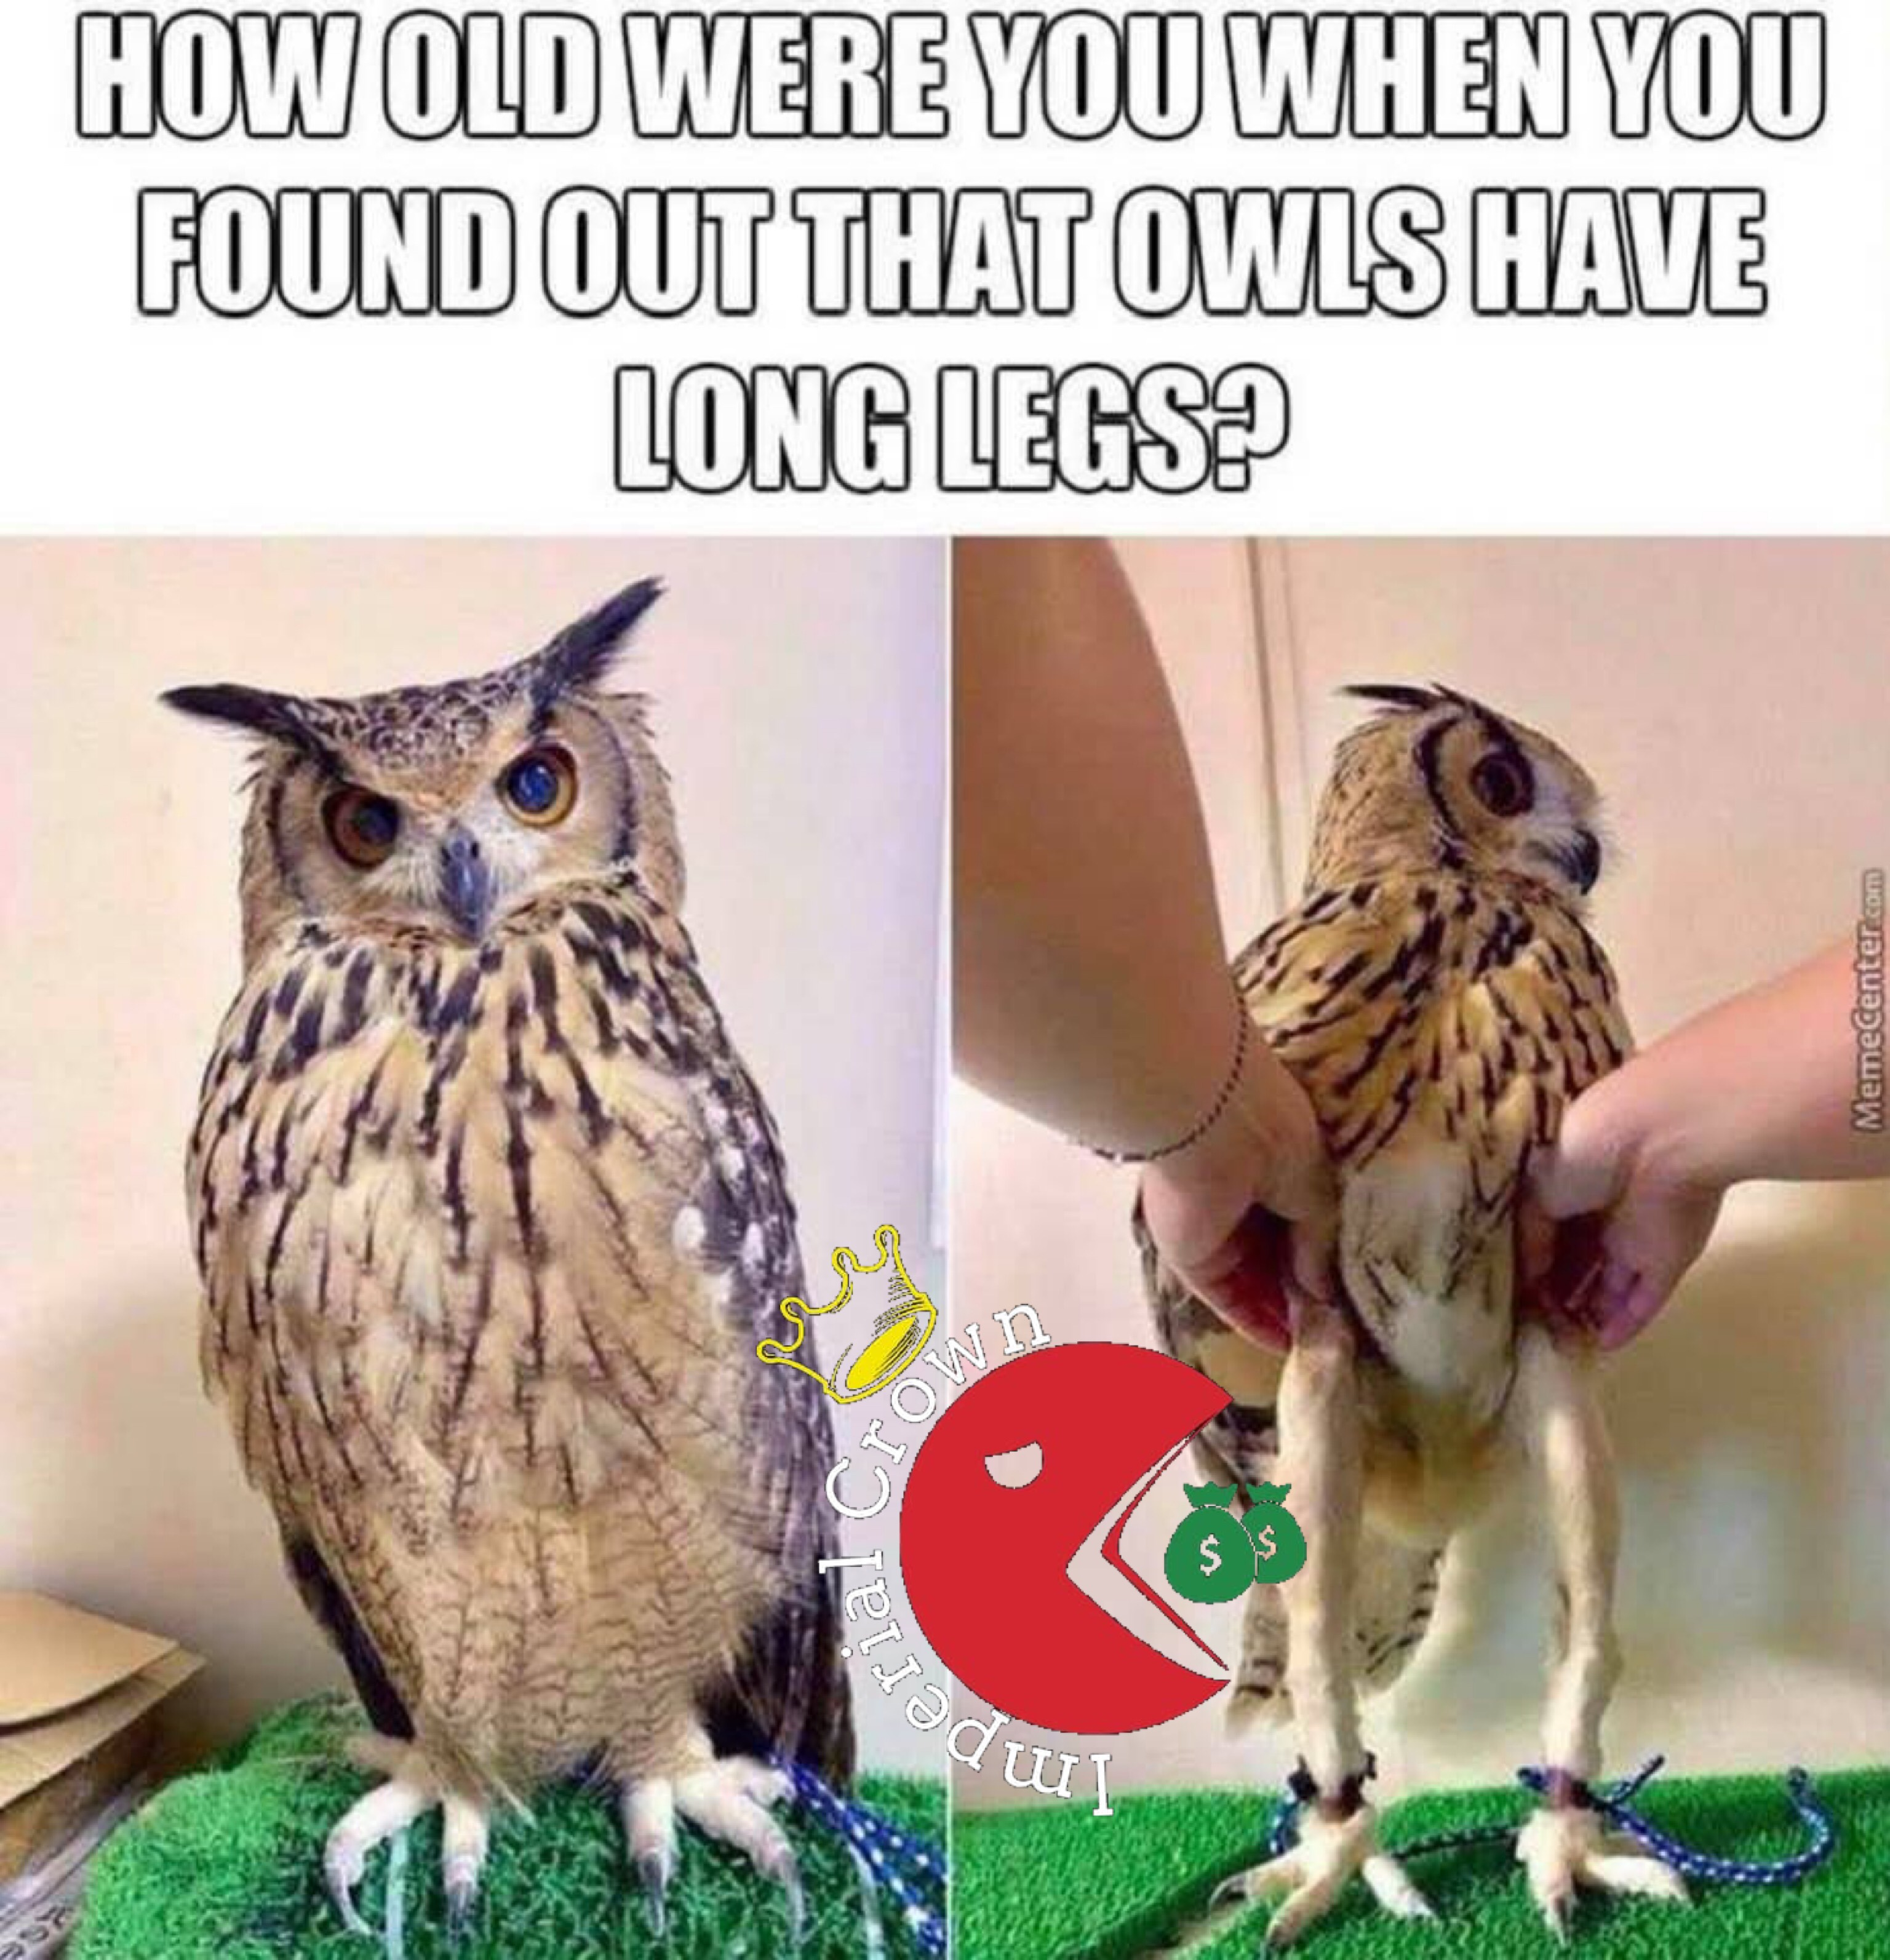 How old were you when you found out that owls have long legs